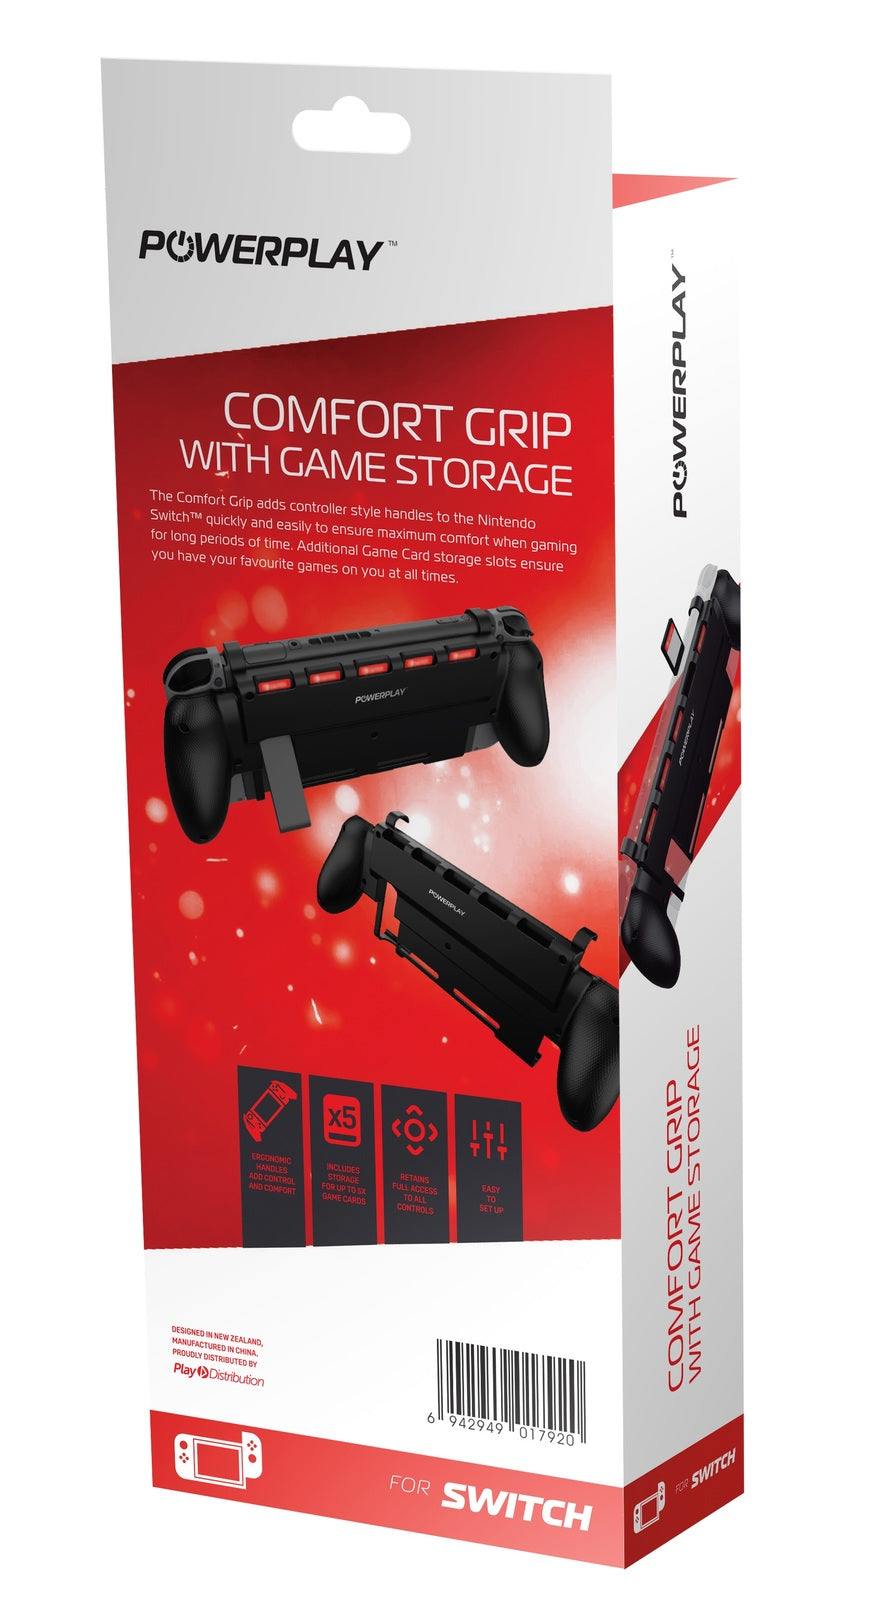 PowerPlay Switch Comfort Grip (with Game Storage) - Nintendo Switch